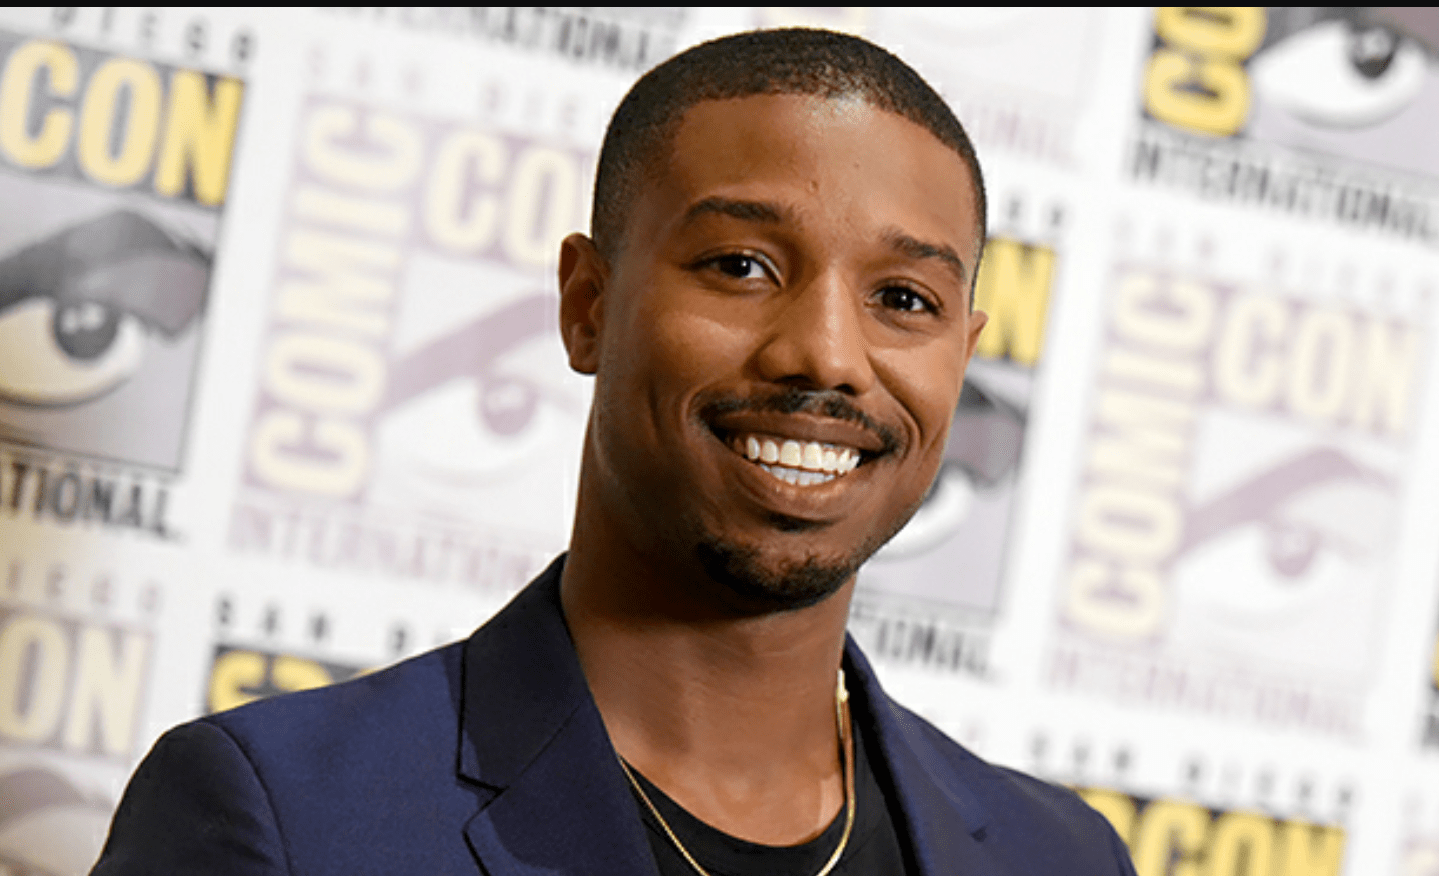 [Entertainment] Skydance Media Seals TV and Film Production Deal with Michael B. Jordan